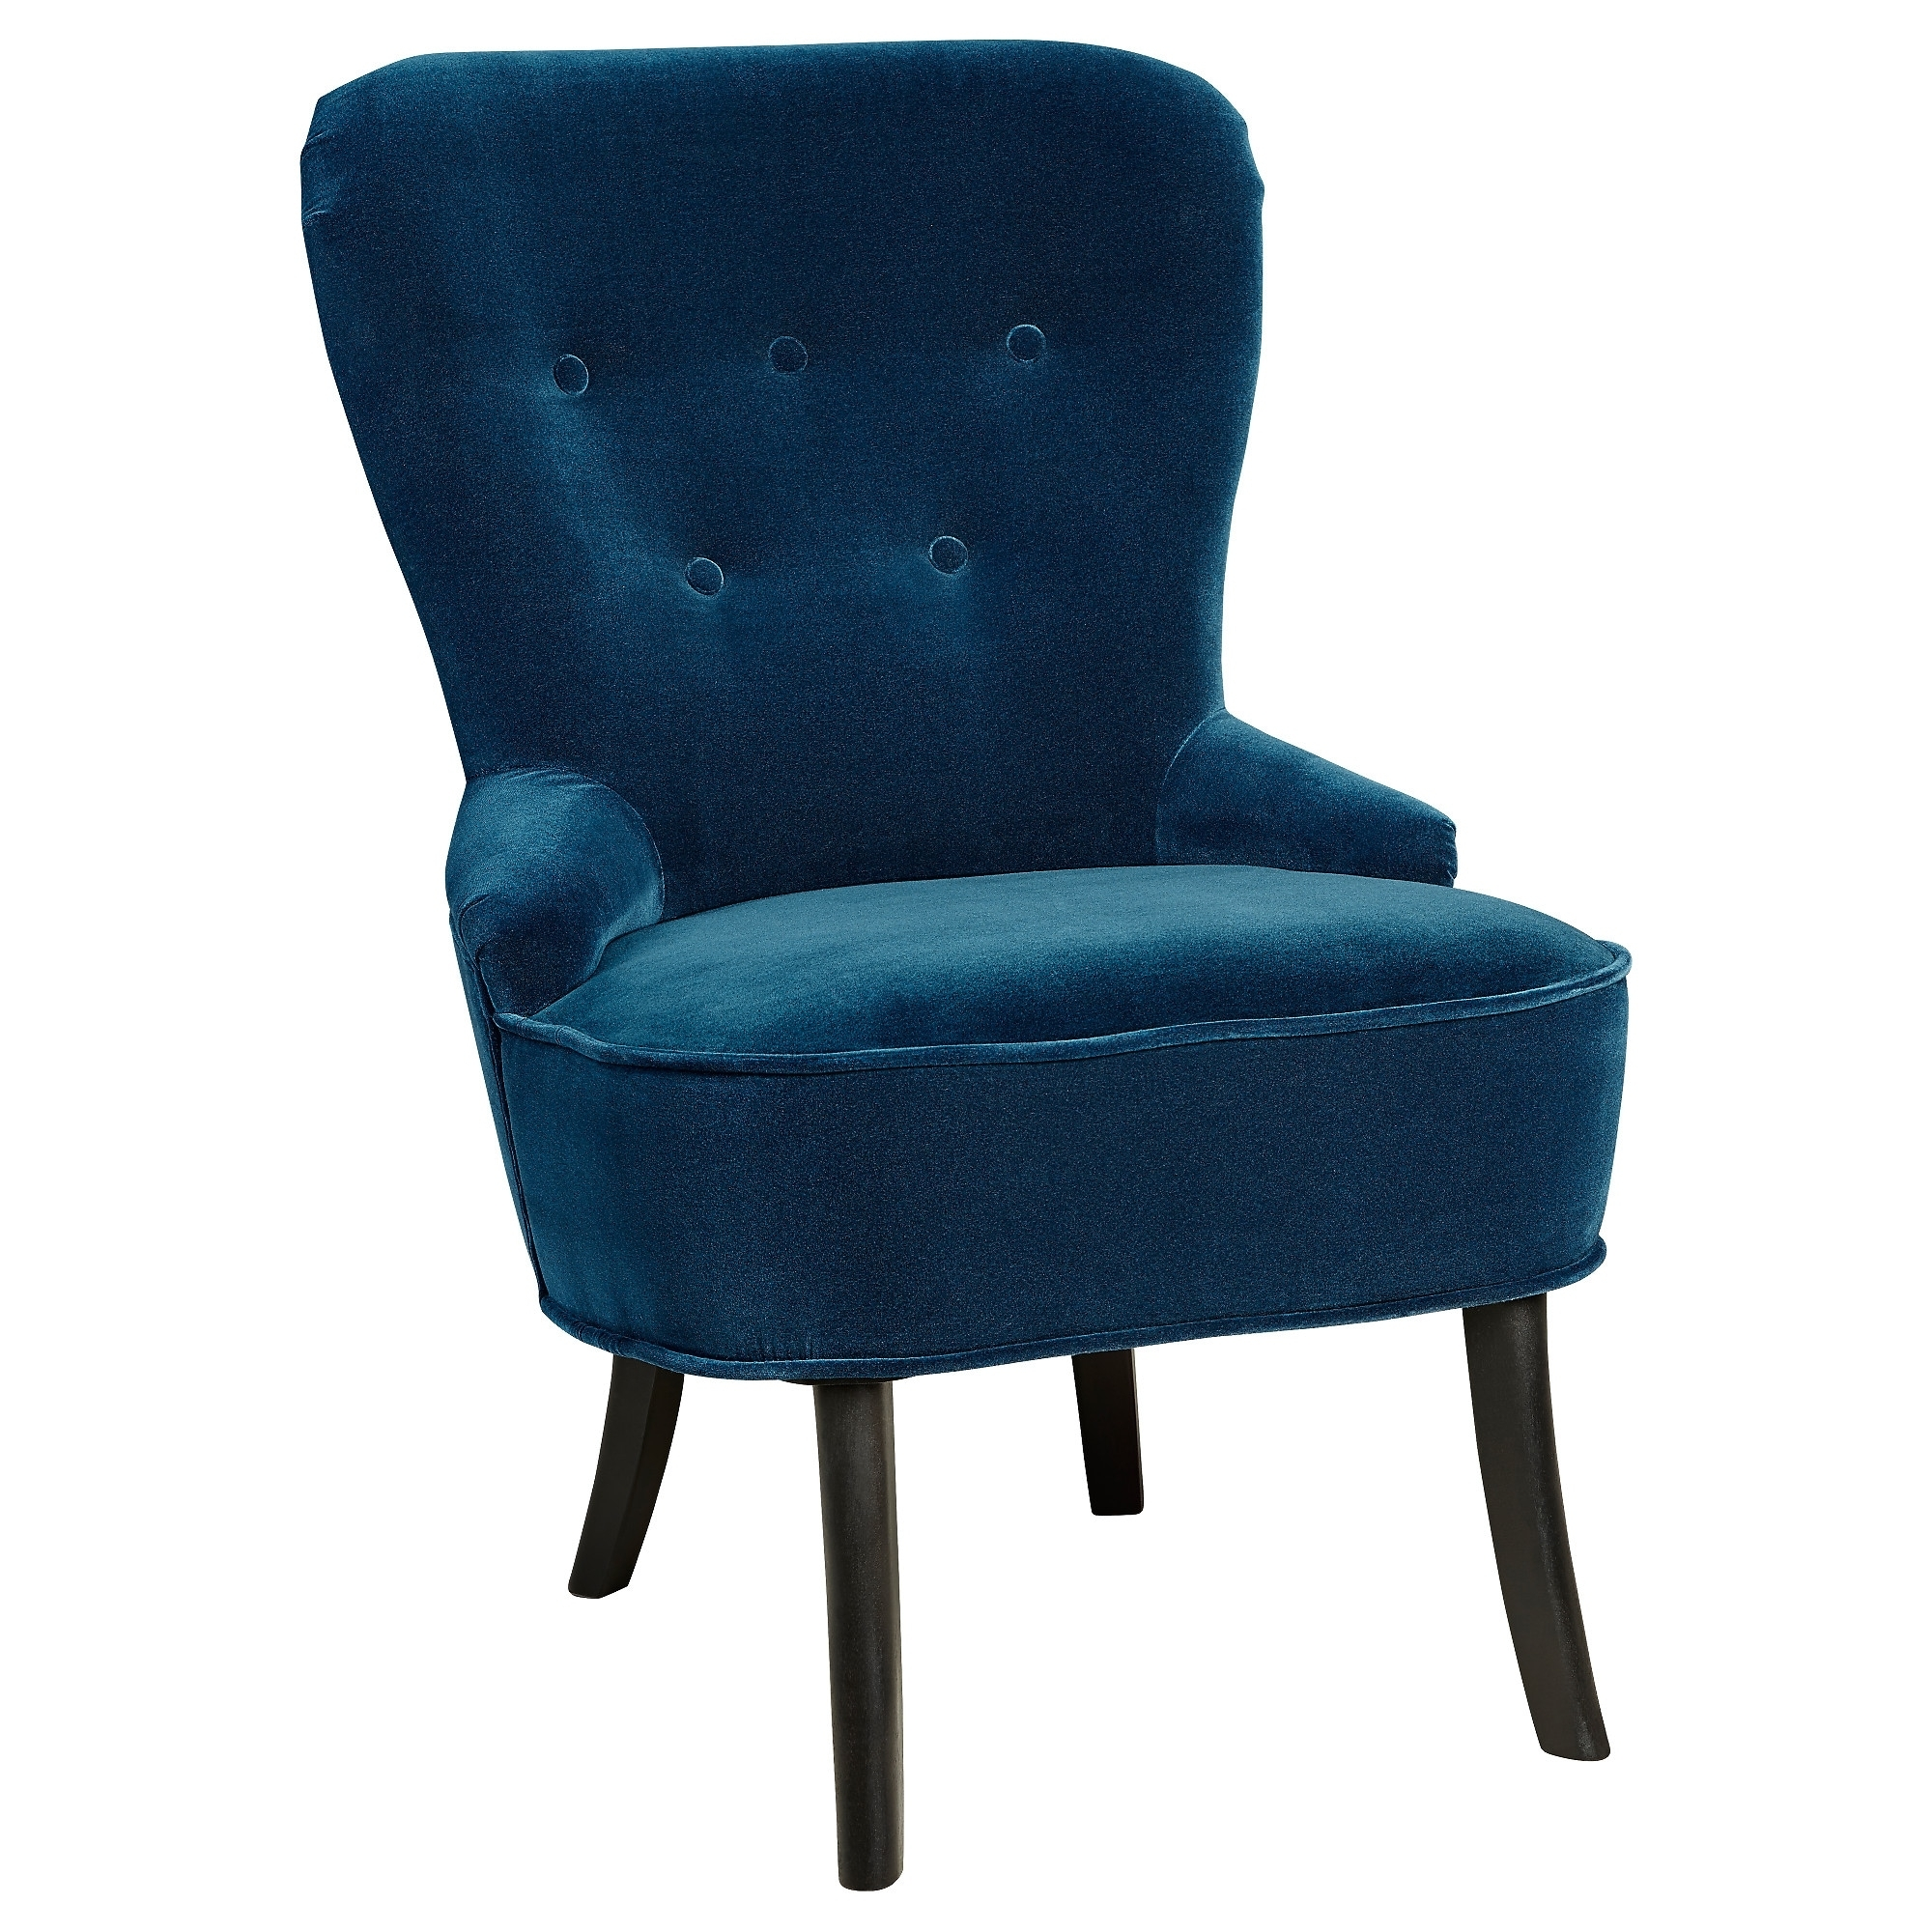 Pilo Blue Side Chairs Within Most Recent Remsta Armchair – Djuparp Dark Green Blue – Ikea (View 3 of 20)